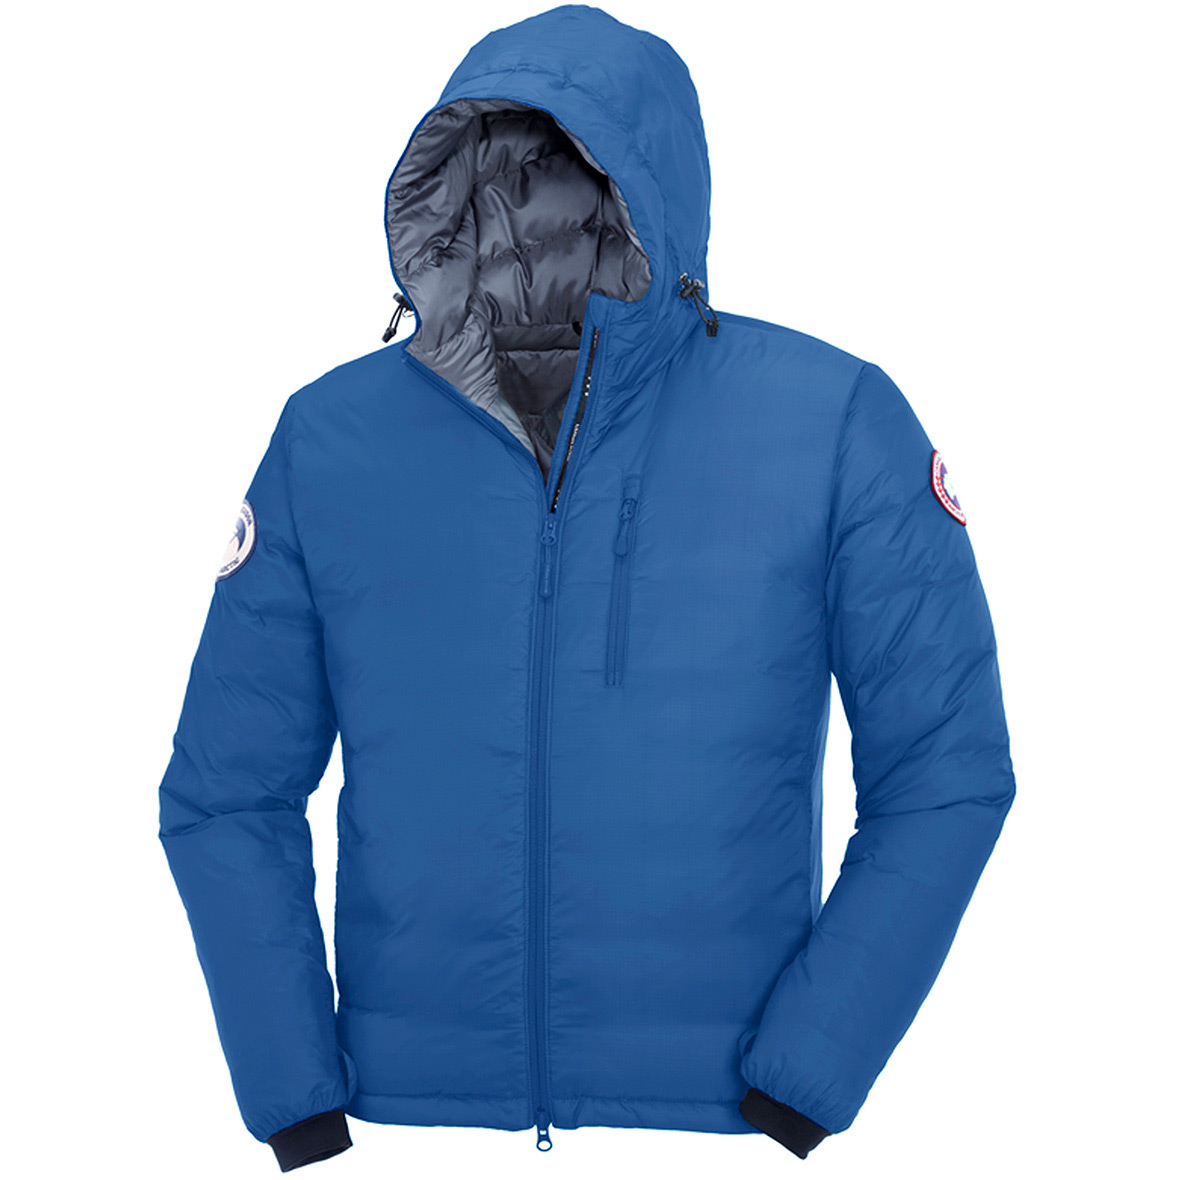 Canada Goose Pbi Lodge Hoody Jacket PBI BLUE For Men